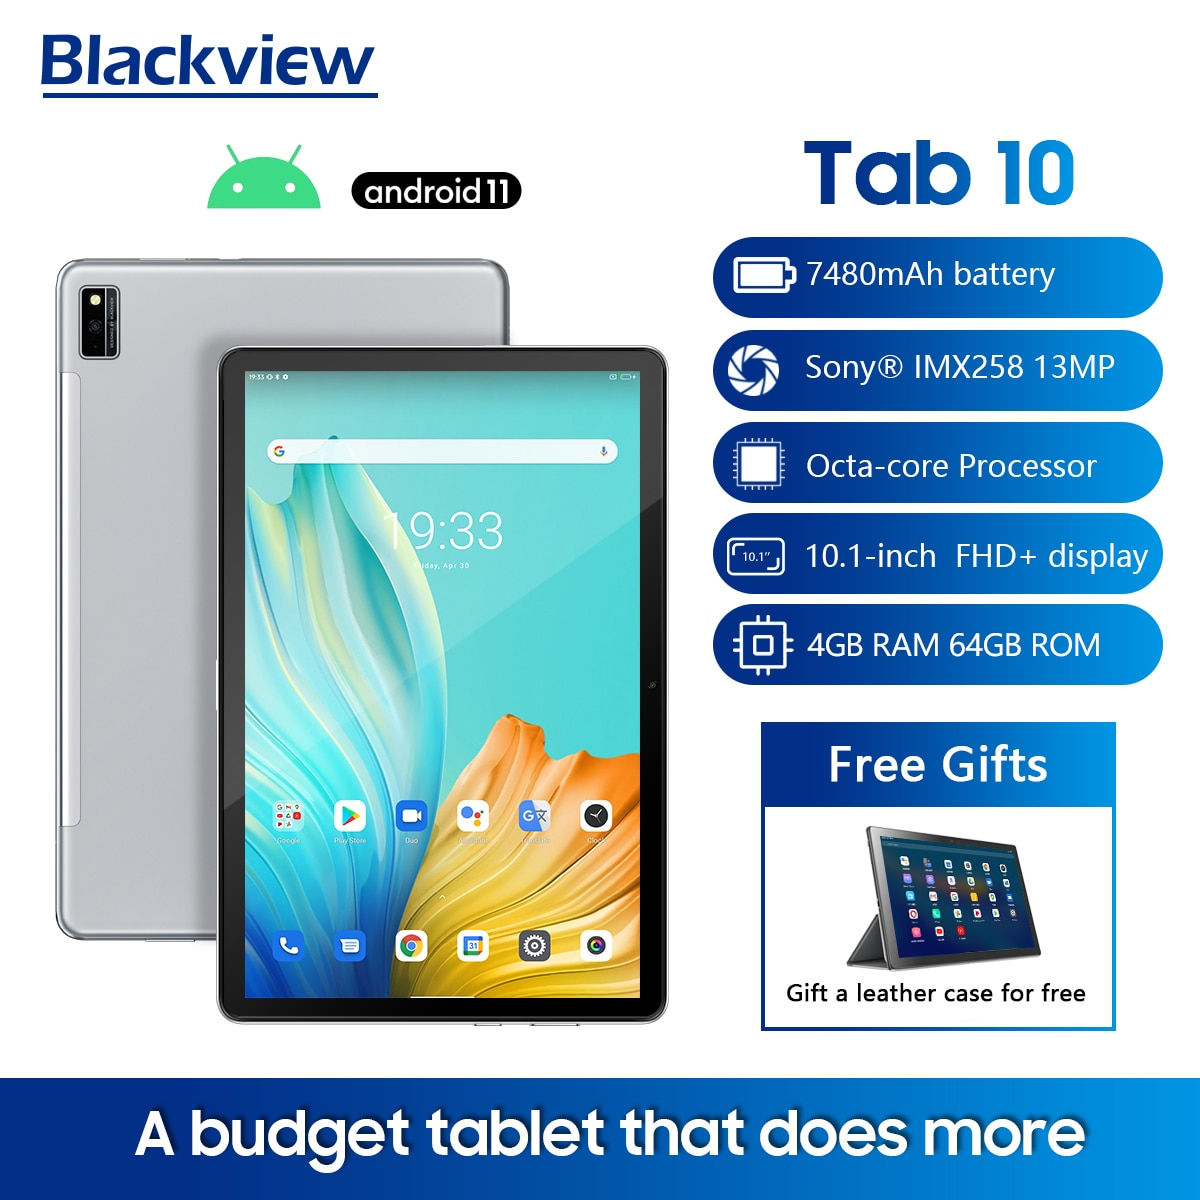 """Blackview Tab 10 Android 11 Tablet PC 10.1"""" 4GB+64GB MTK8768 Octa Core 1.8GHz 13MP WiFi& Bluetooth 4G 7480mAh Battery 1920 *1200"""